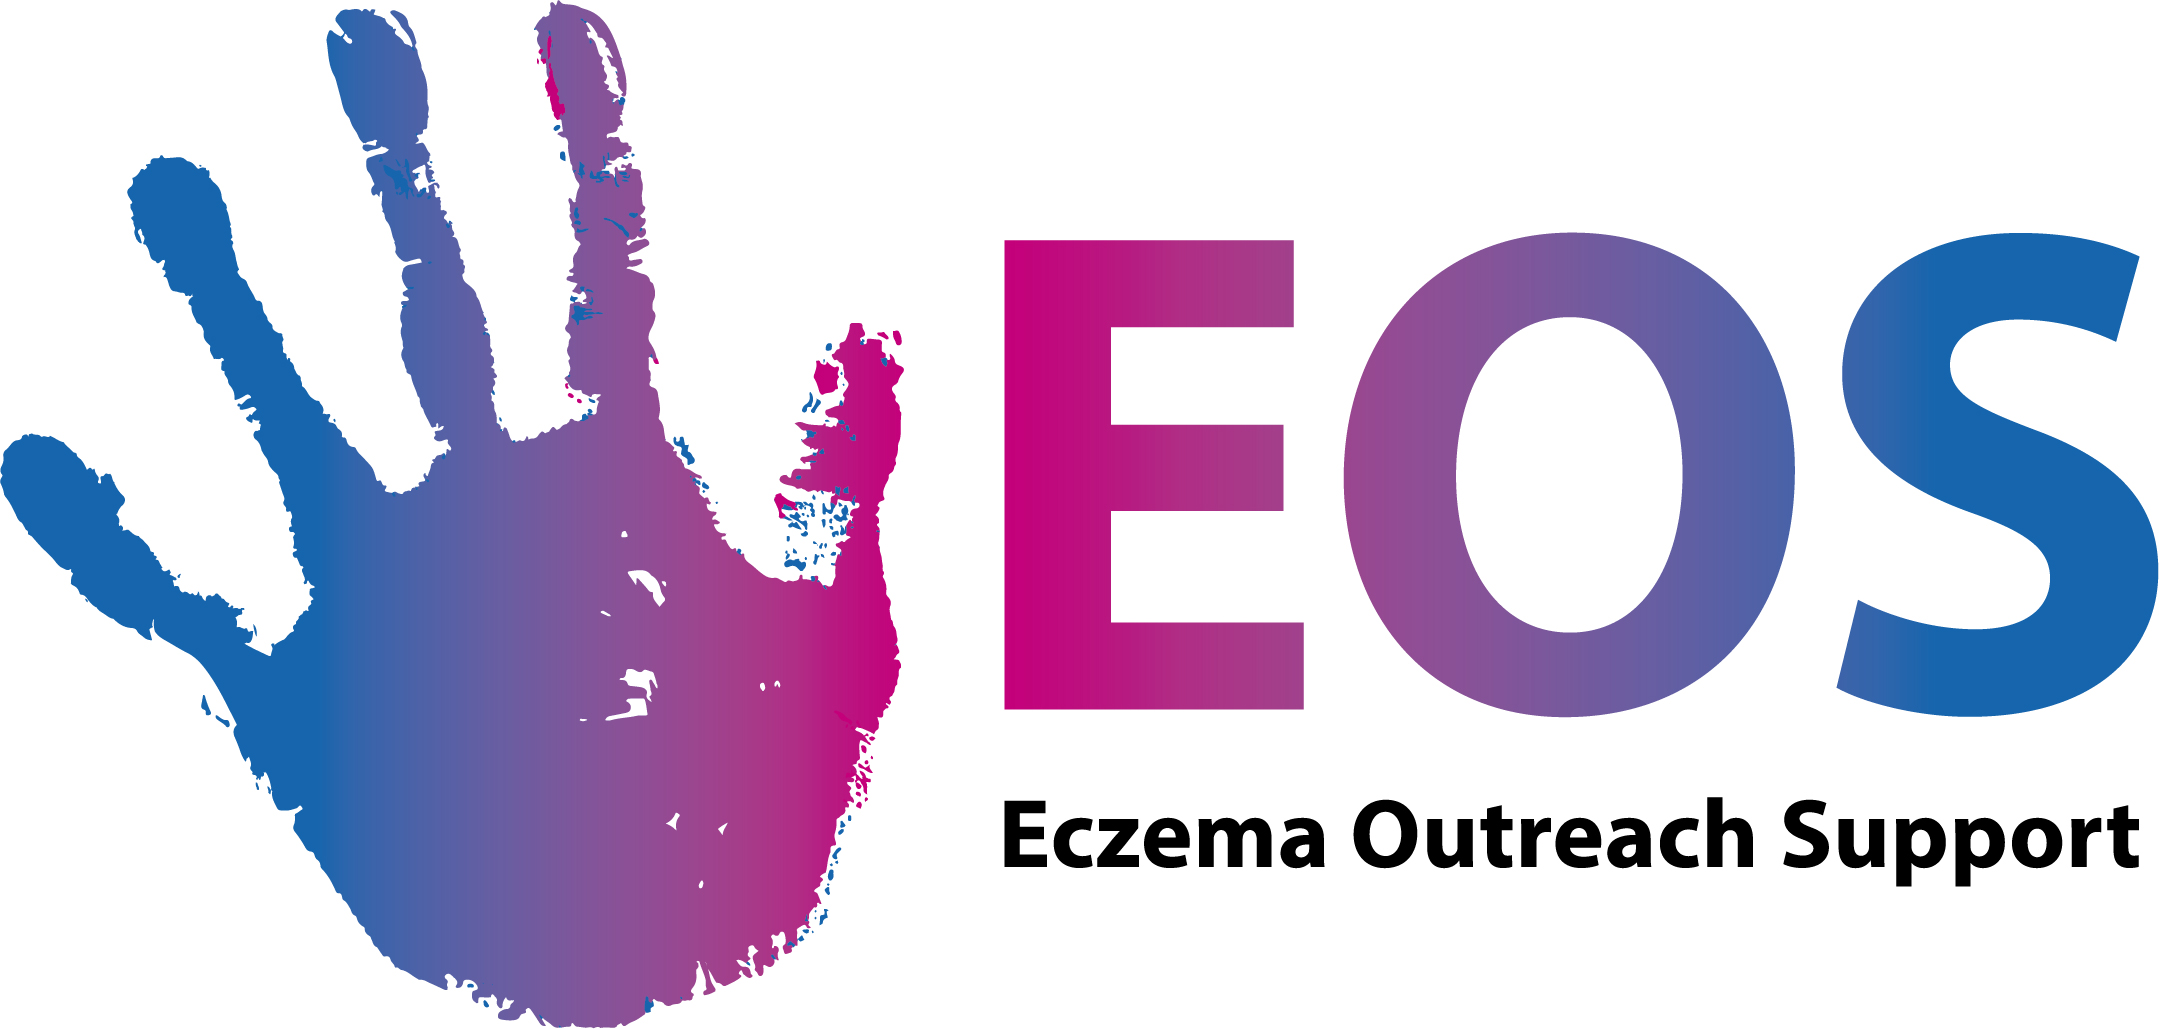 Eczema Outreach Support logo